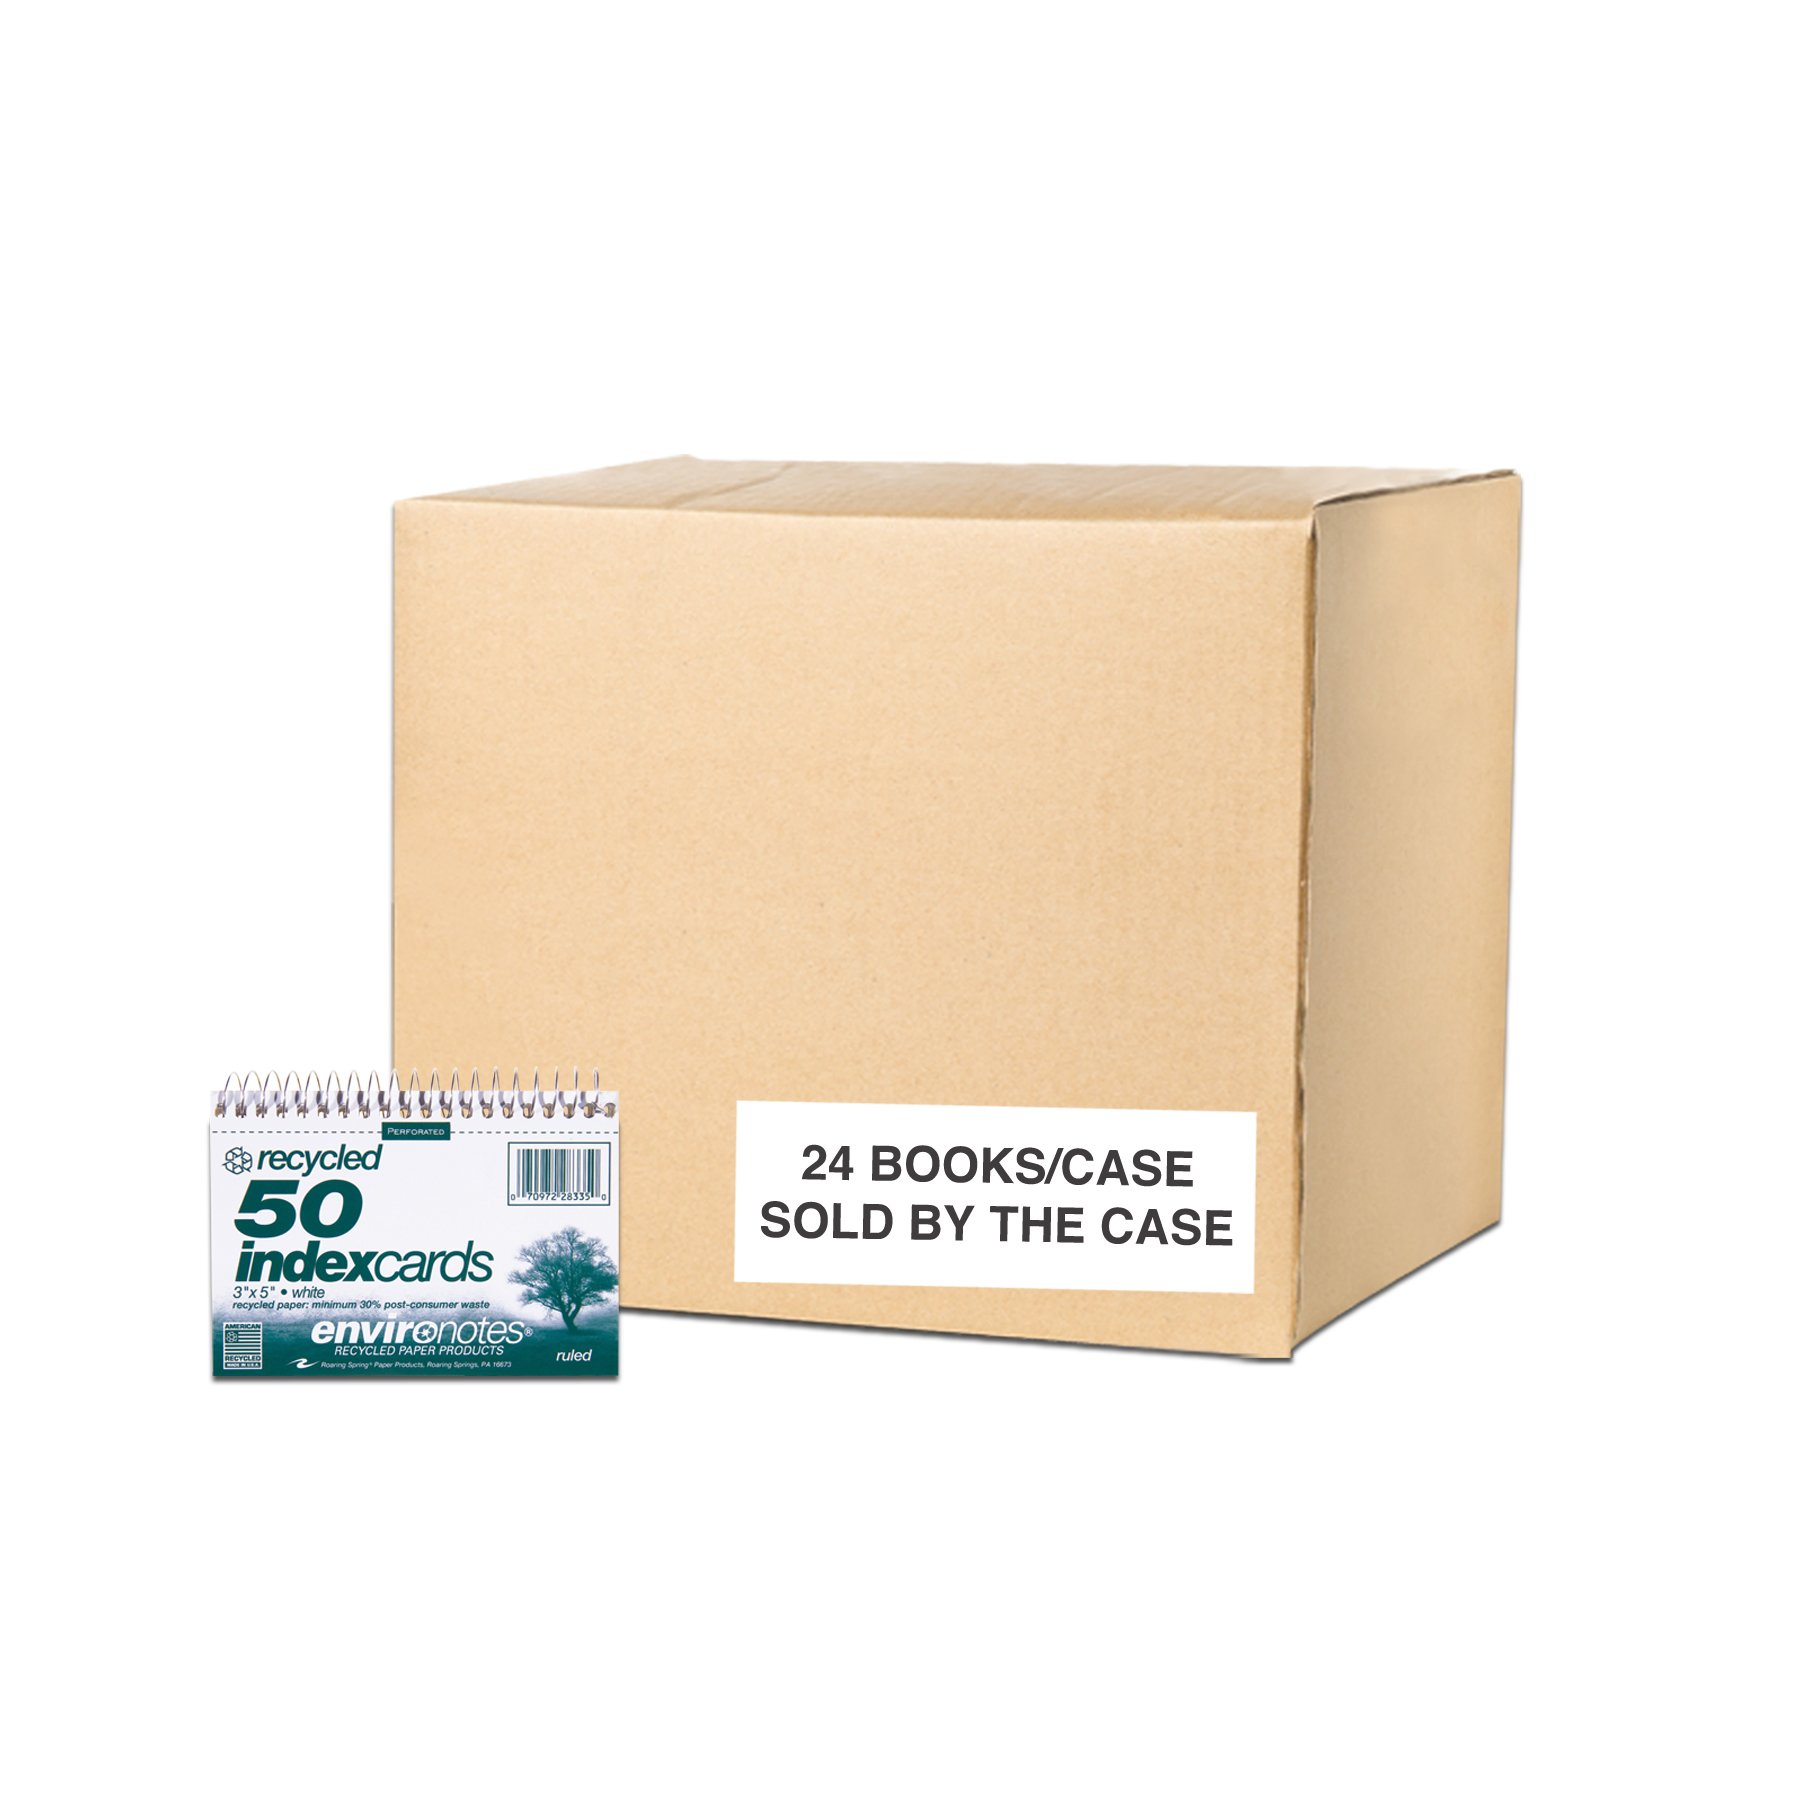 Case of 24 Packs of Wirebound Index Cards, 3''x5'', 50 sheets of White Recycled 100# index, narrow Ruled one side, Perforated